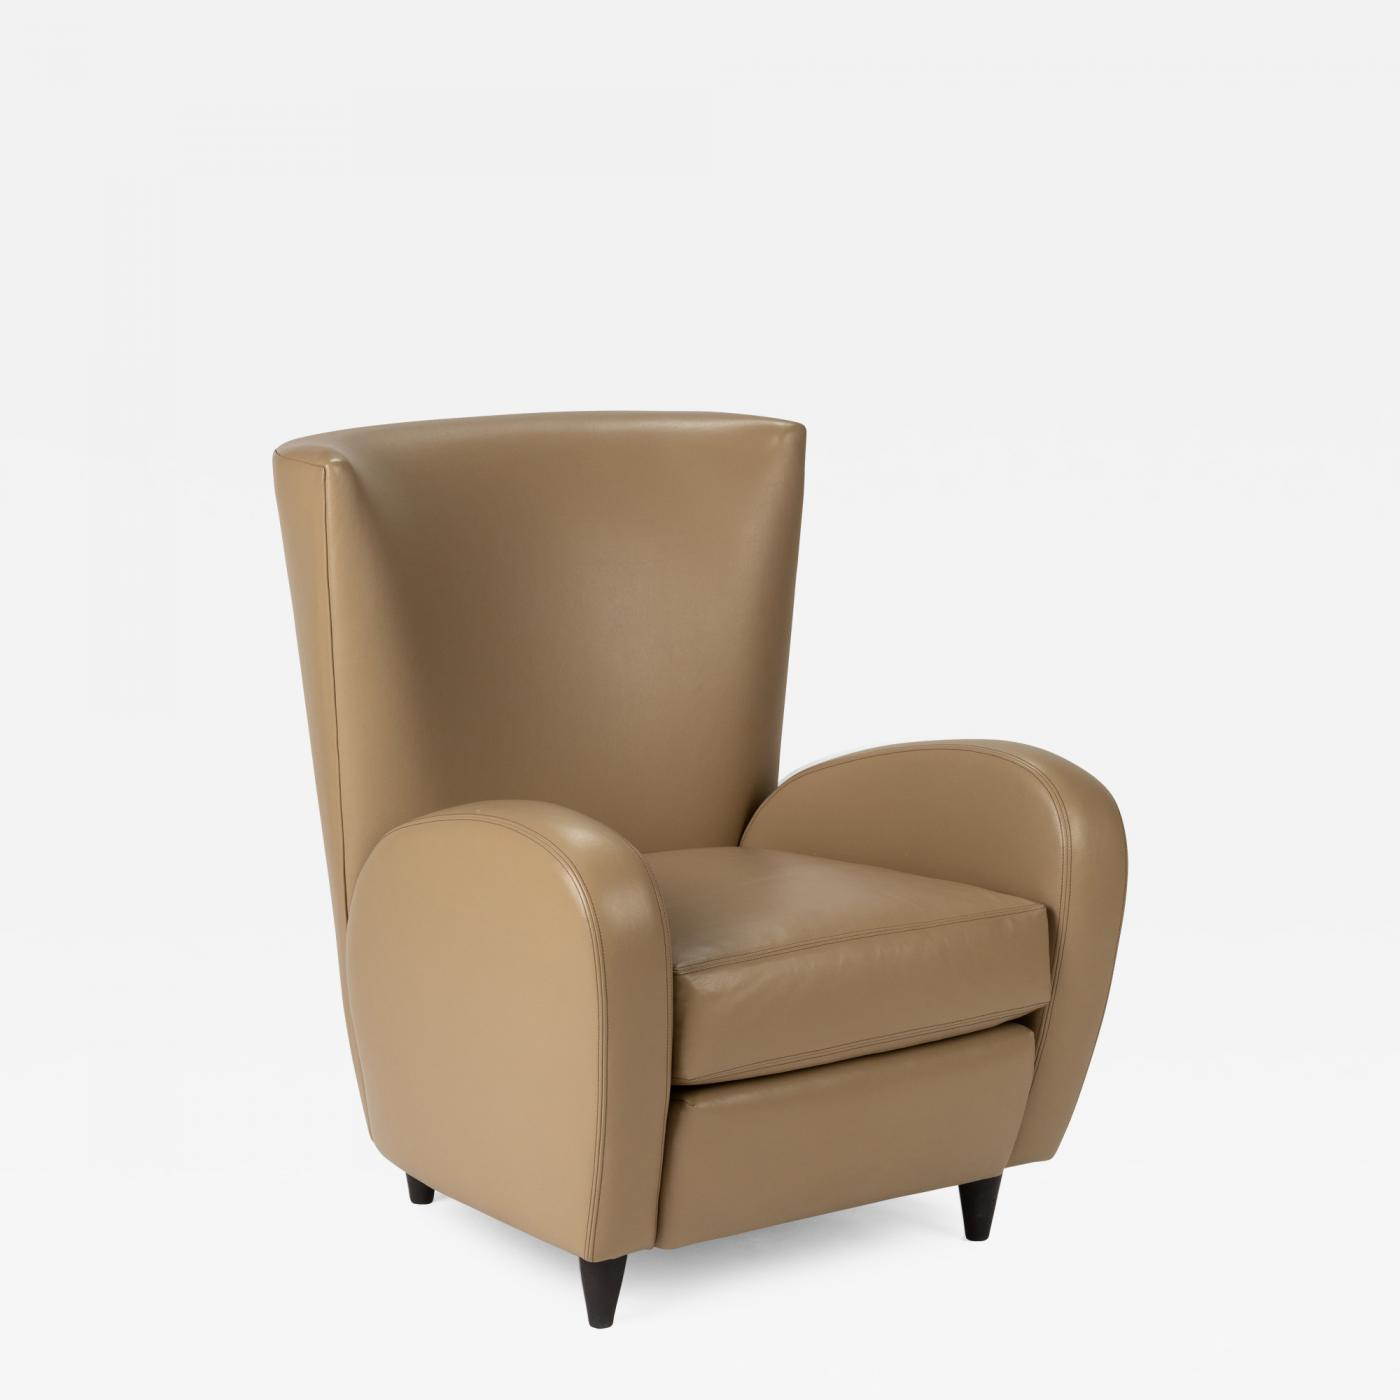 Magnificent Allan Switzer The Lighthouse Lounge Chair Caraccident5 Cool Chair Designs And Ideas Caraccident5Info